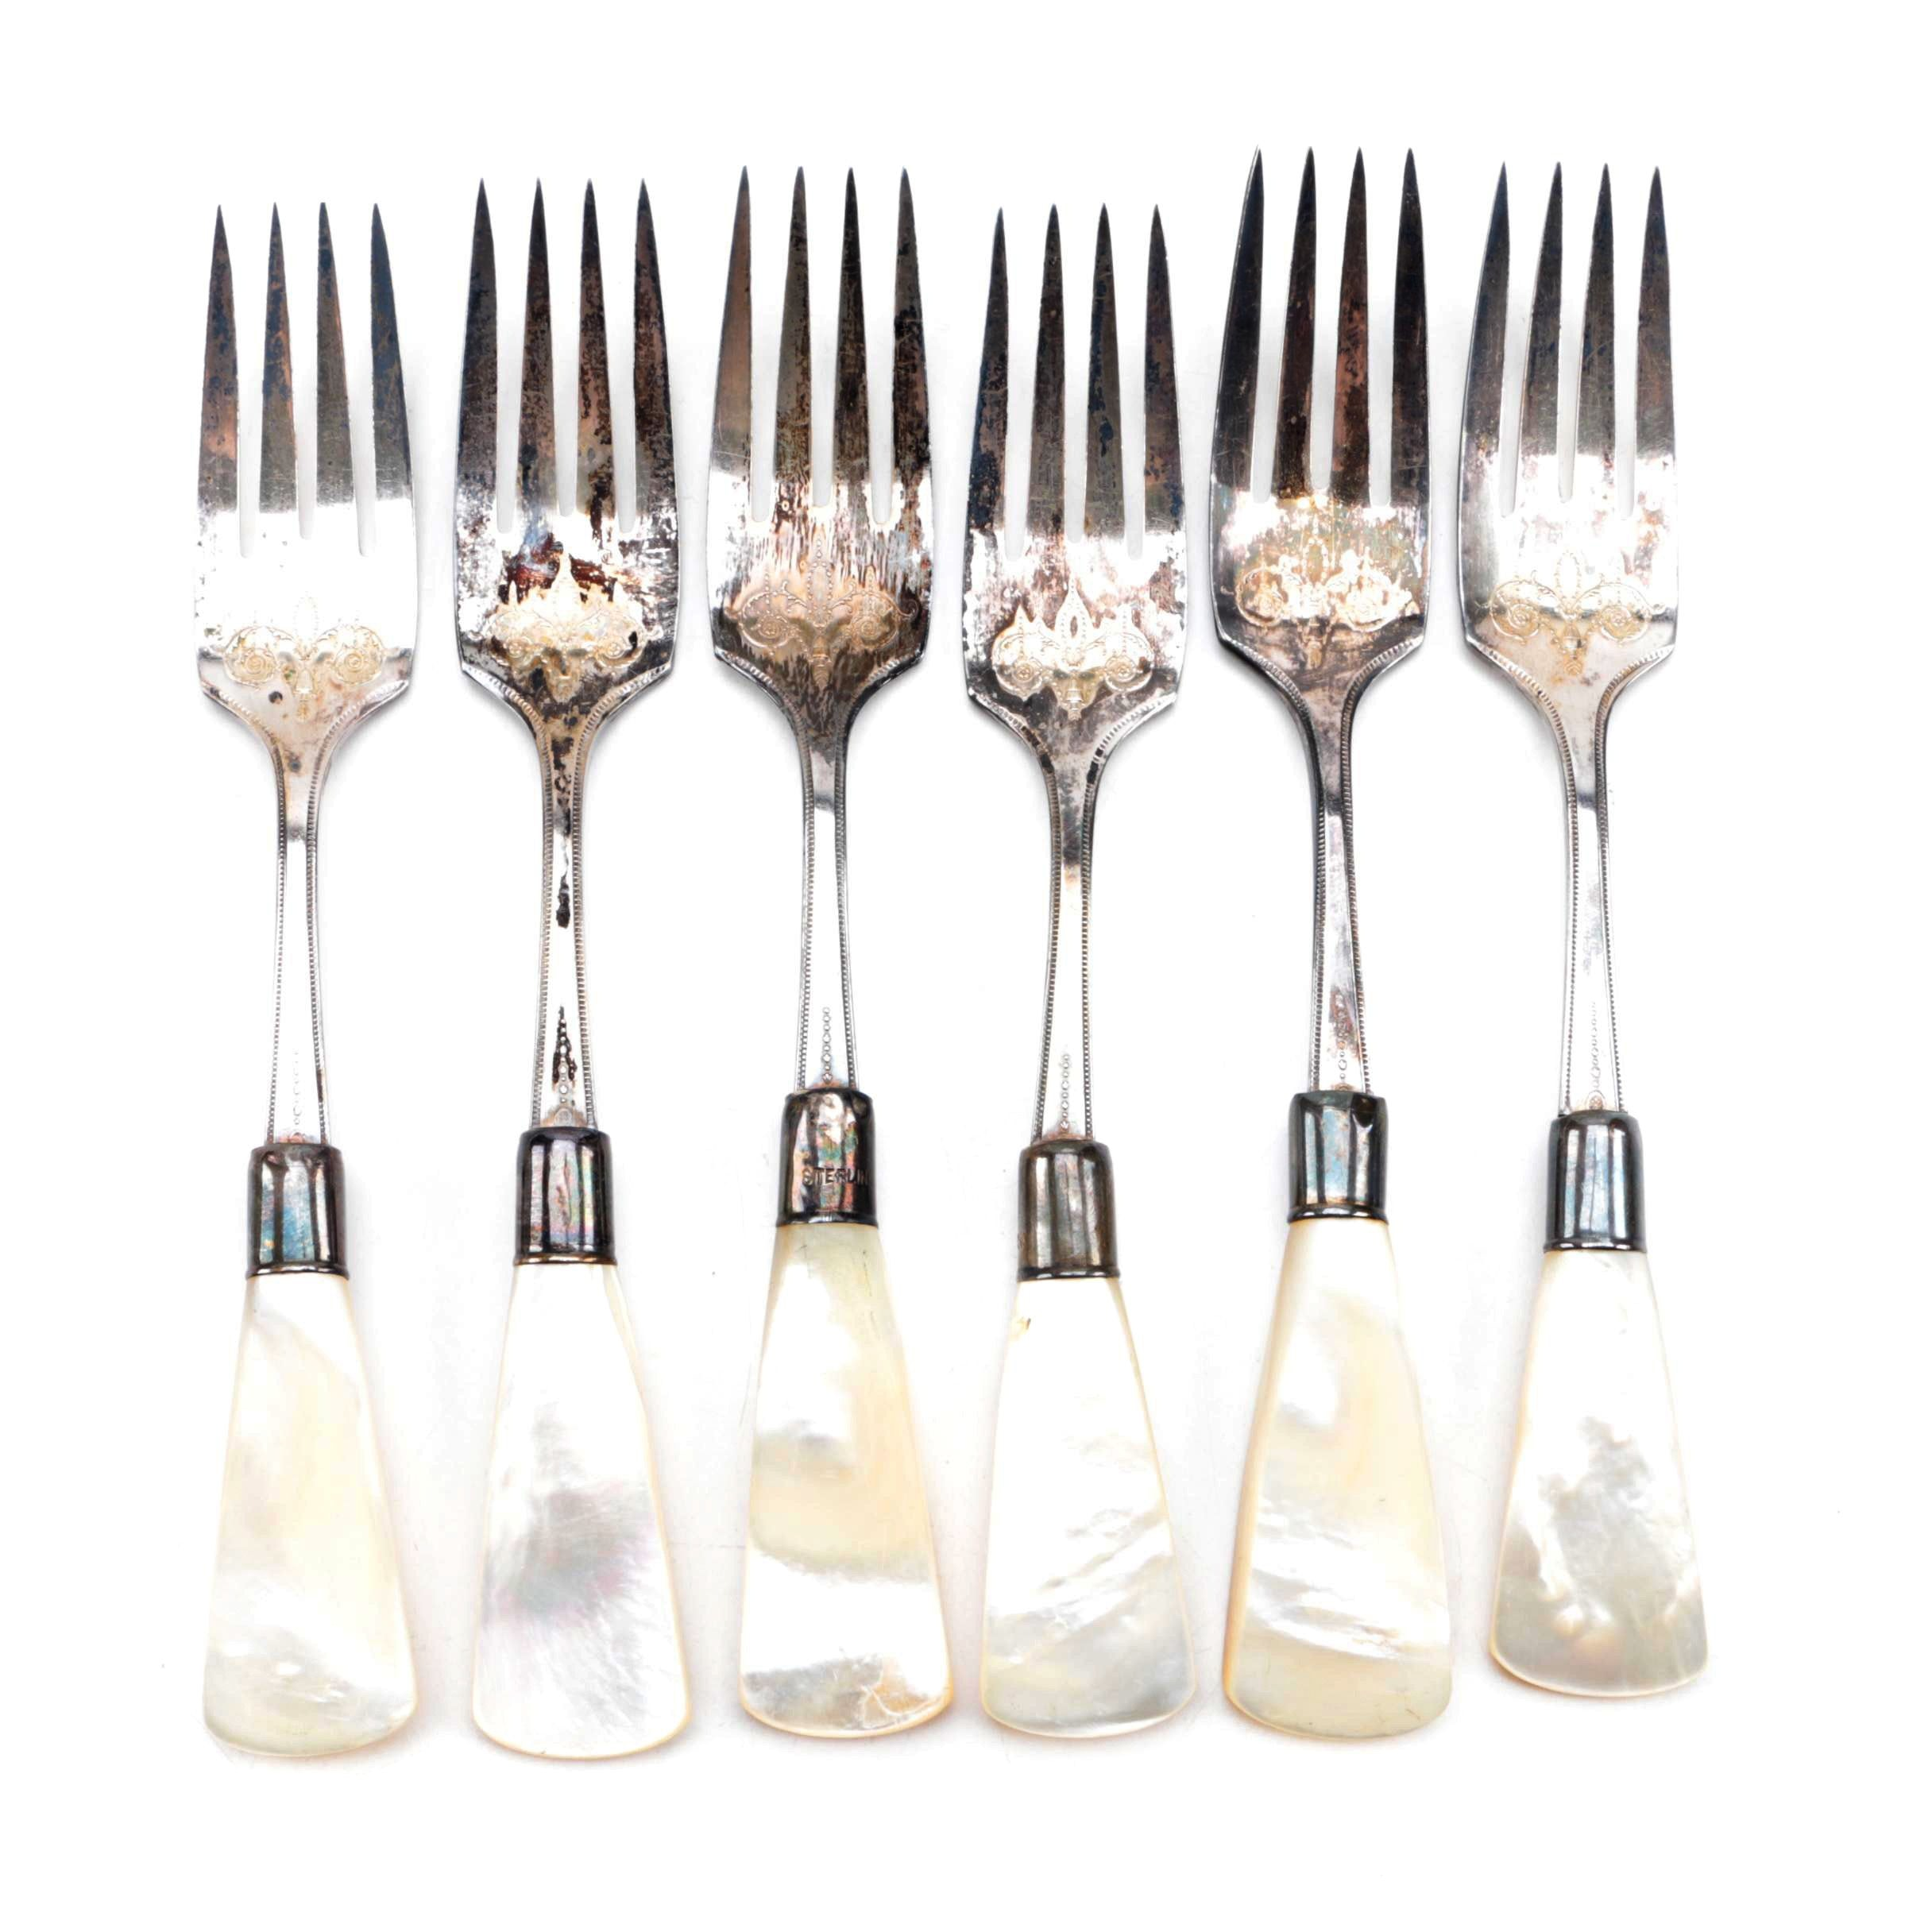 Mother of Pearl Handled Forks with Sterling Silver Bolsters